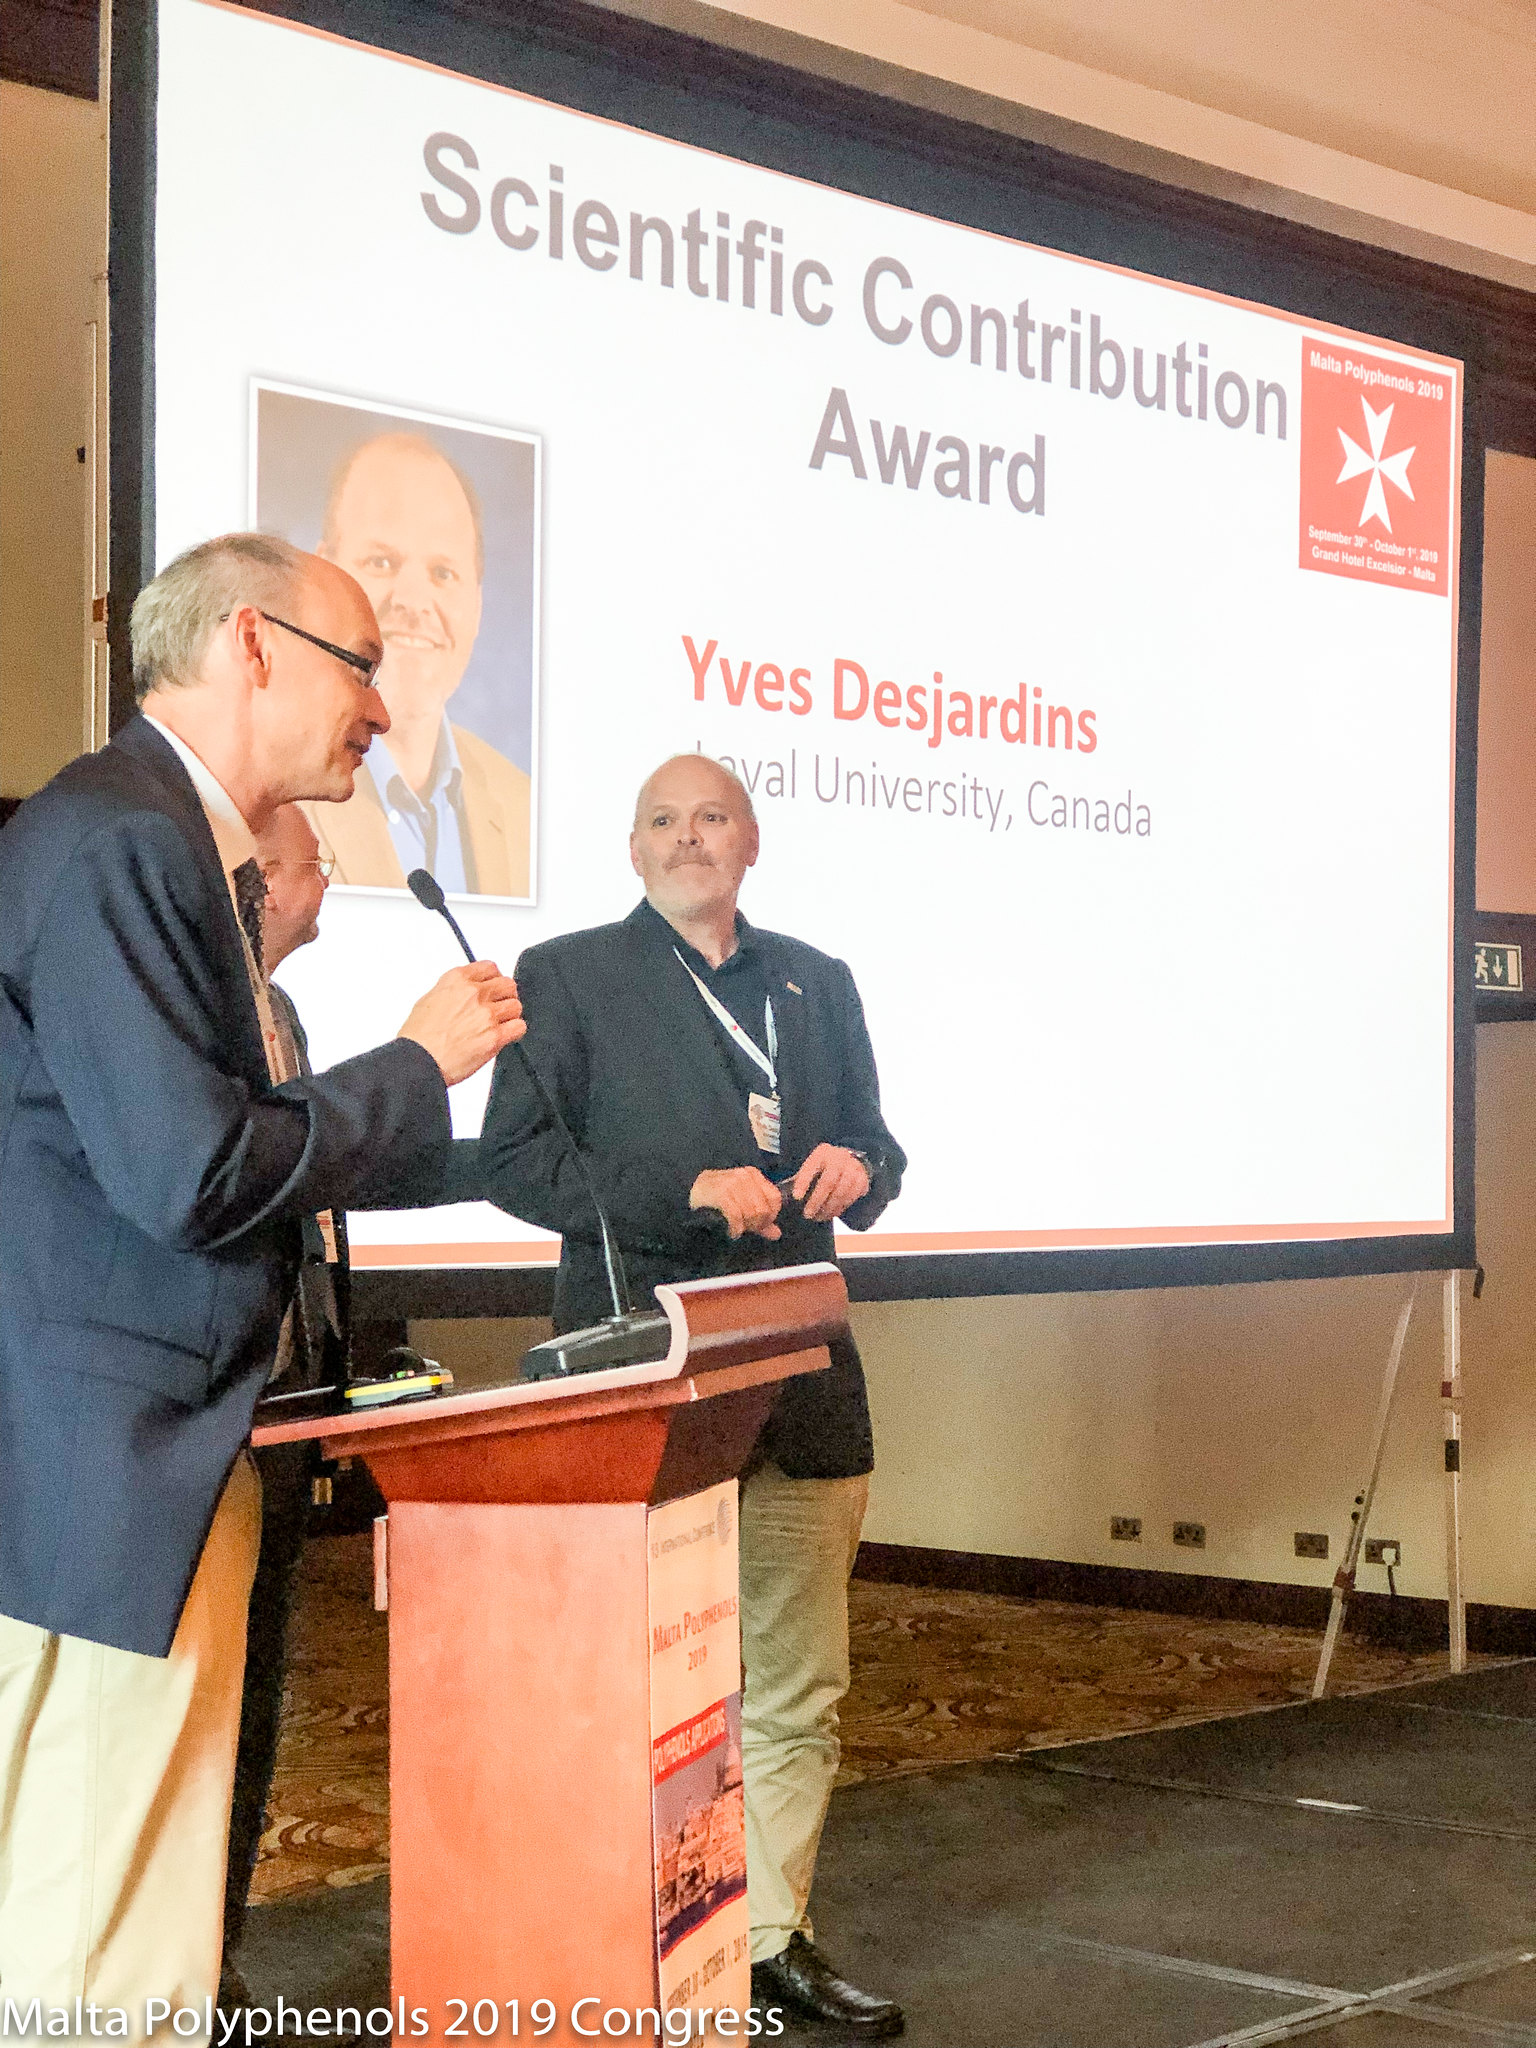 The Scientific Committee has discerned a Scientific Contribution Award to Prof. Yves Desjardins